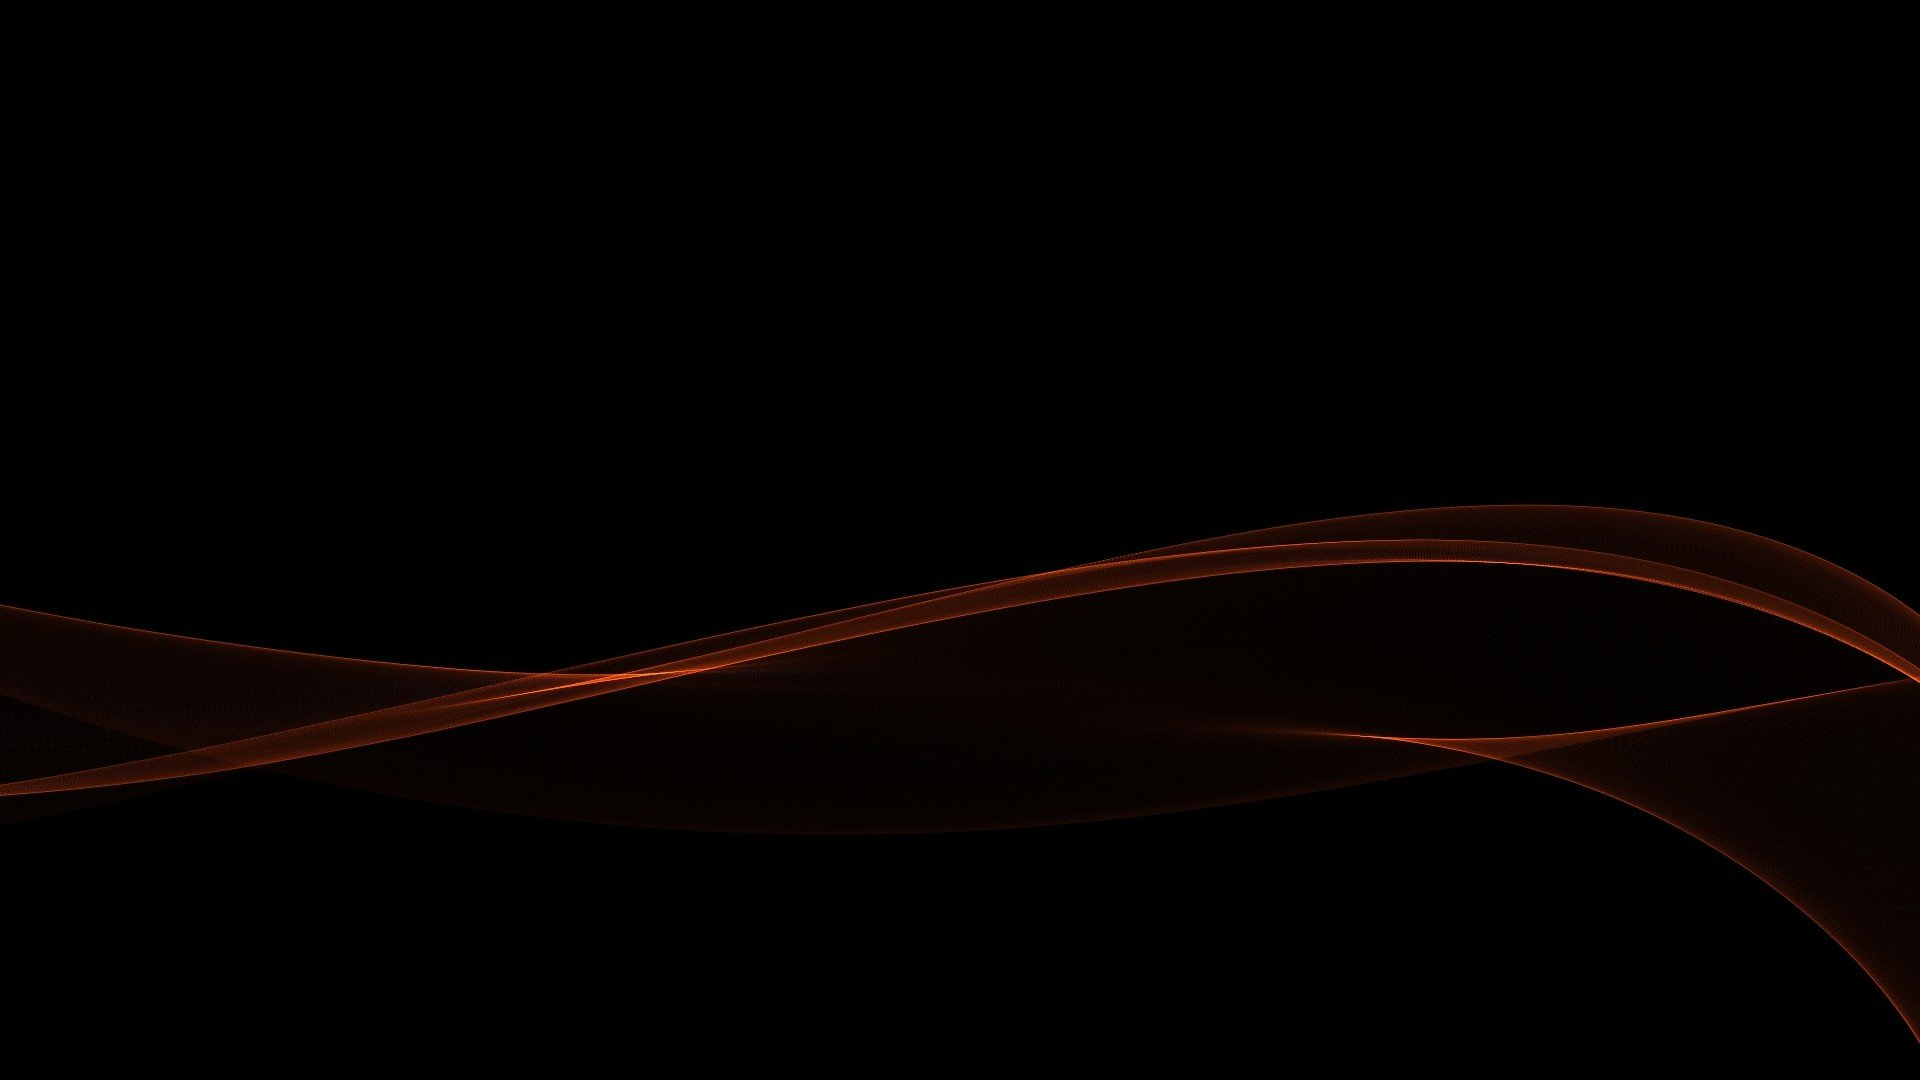 Minimalistic Home Red Gradient Minimalistic Waves Black Abstract Wallpaper